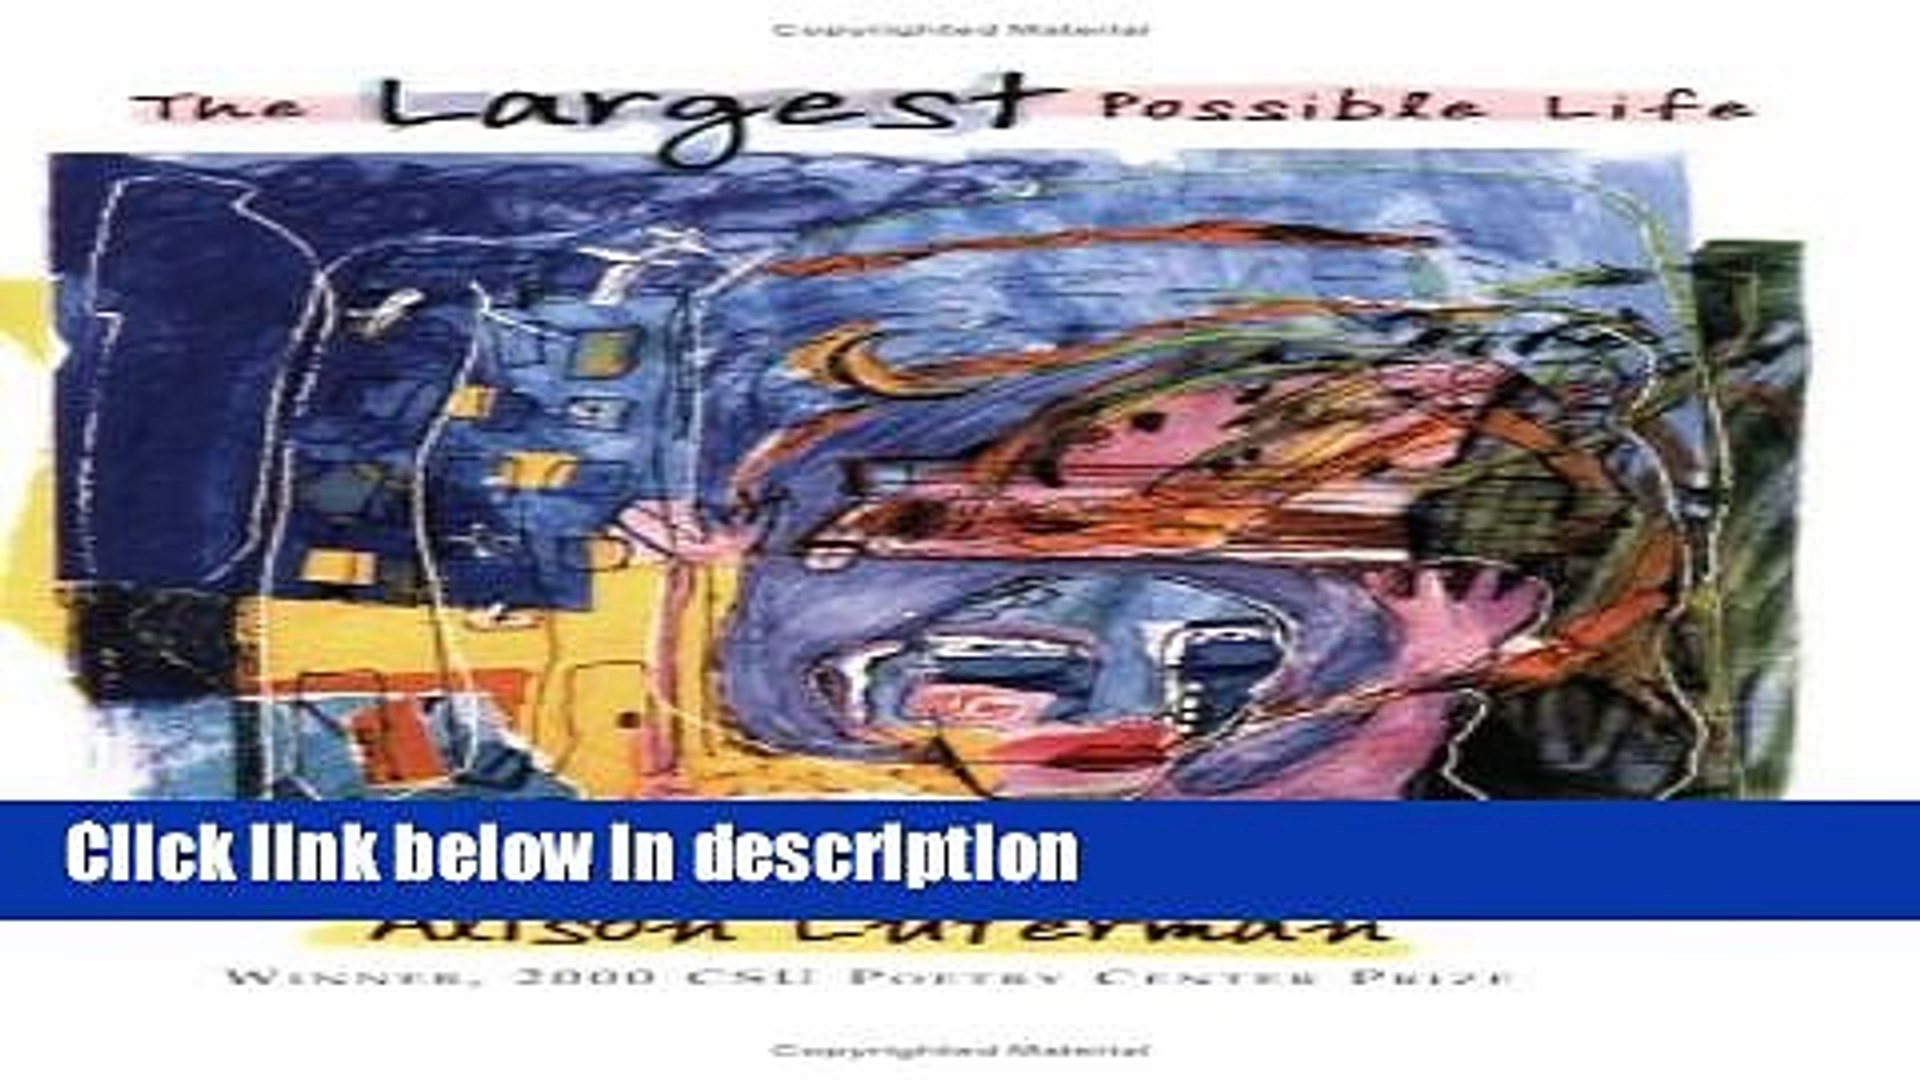 Ebook The Largest Possible Life (CSU poetry series) (CSU poetry series) (CSU poetry series) Free